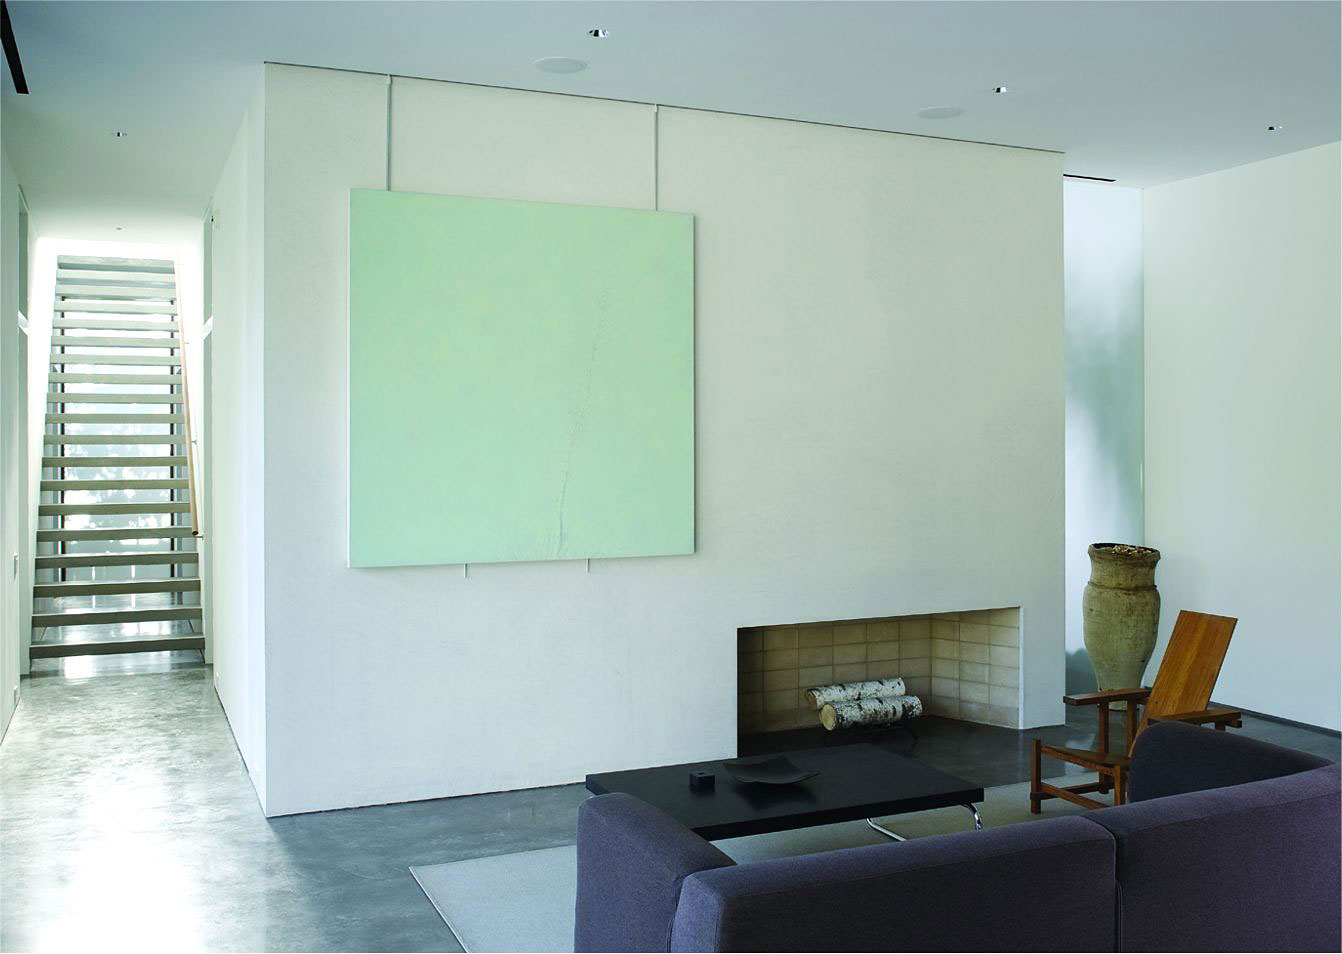 The Glenwood Residence by Wernerfield Architects (5)